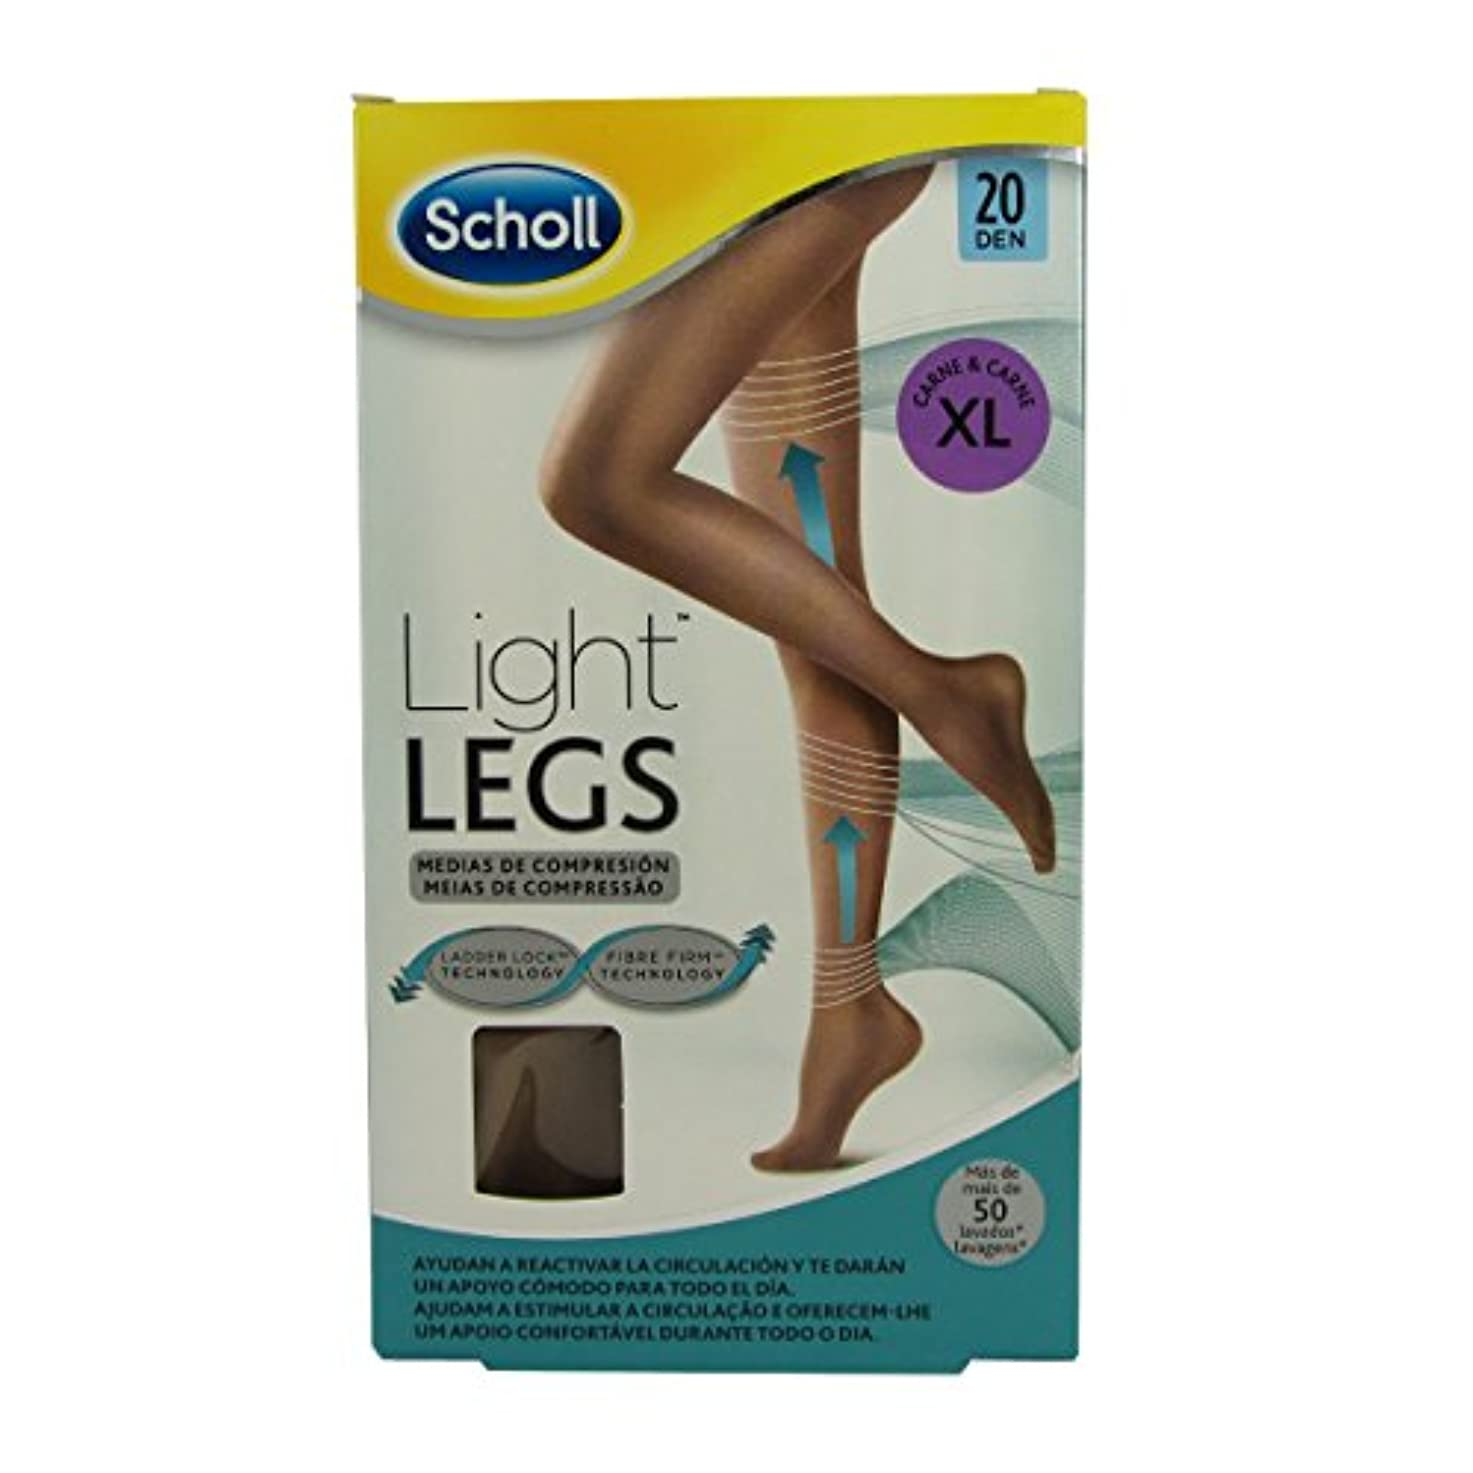 裏切る所有者輪郭Scholl Light Legs Compression Tights 20den Skin Extra Large [並行輸入品]